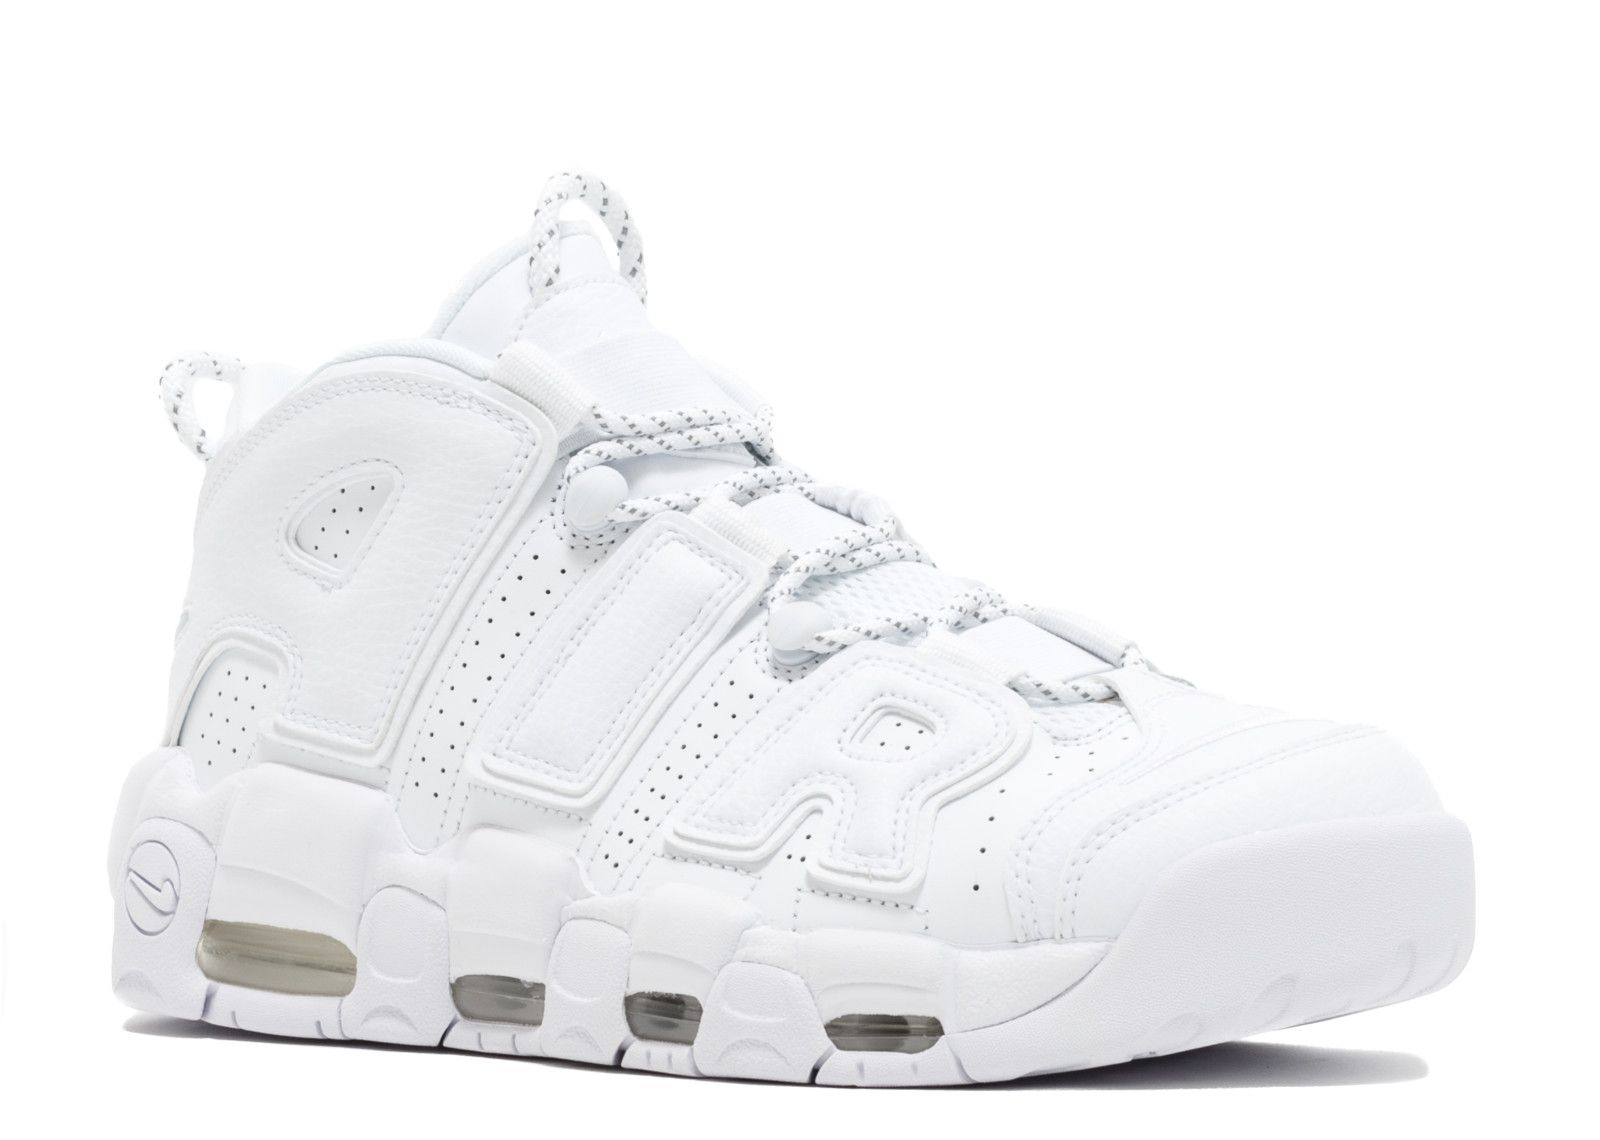 20973cb3f1e 2017-2018 Retro Fashion AIR MORE UPTEMPO 96 Triple White 921948 100 ...